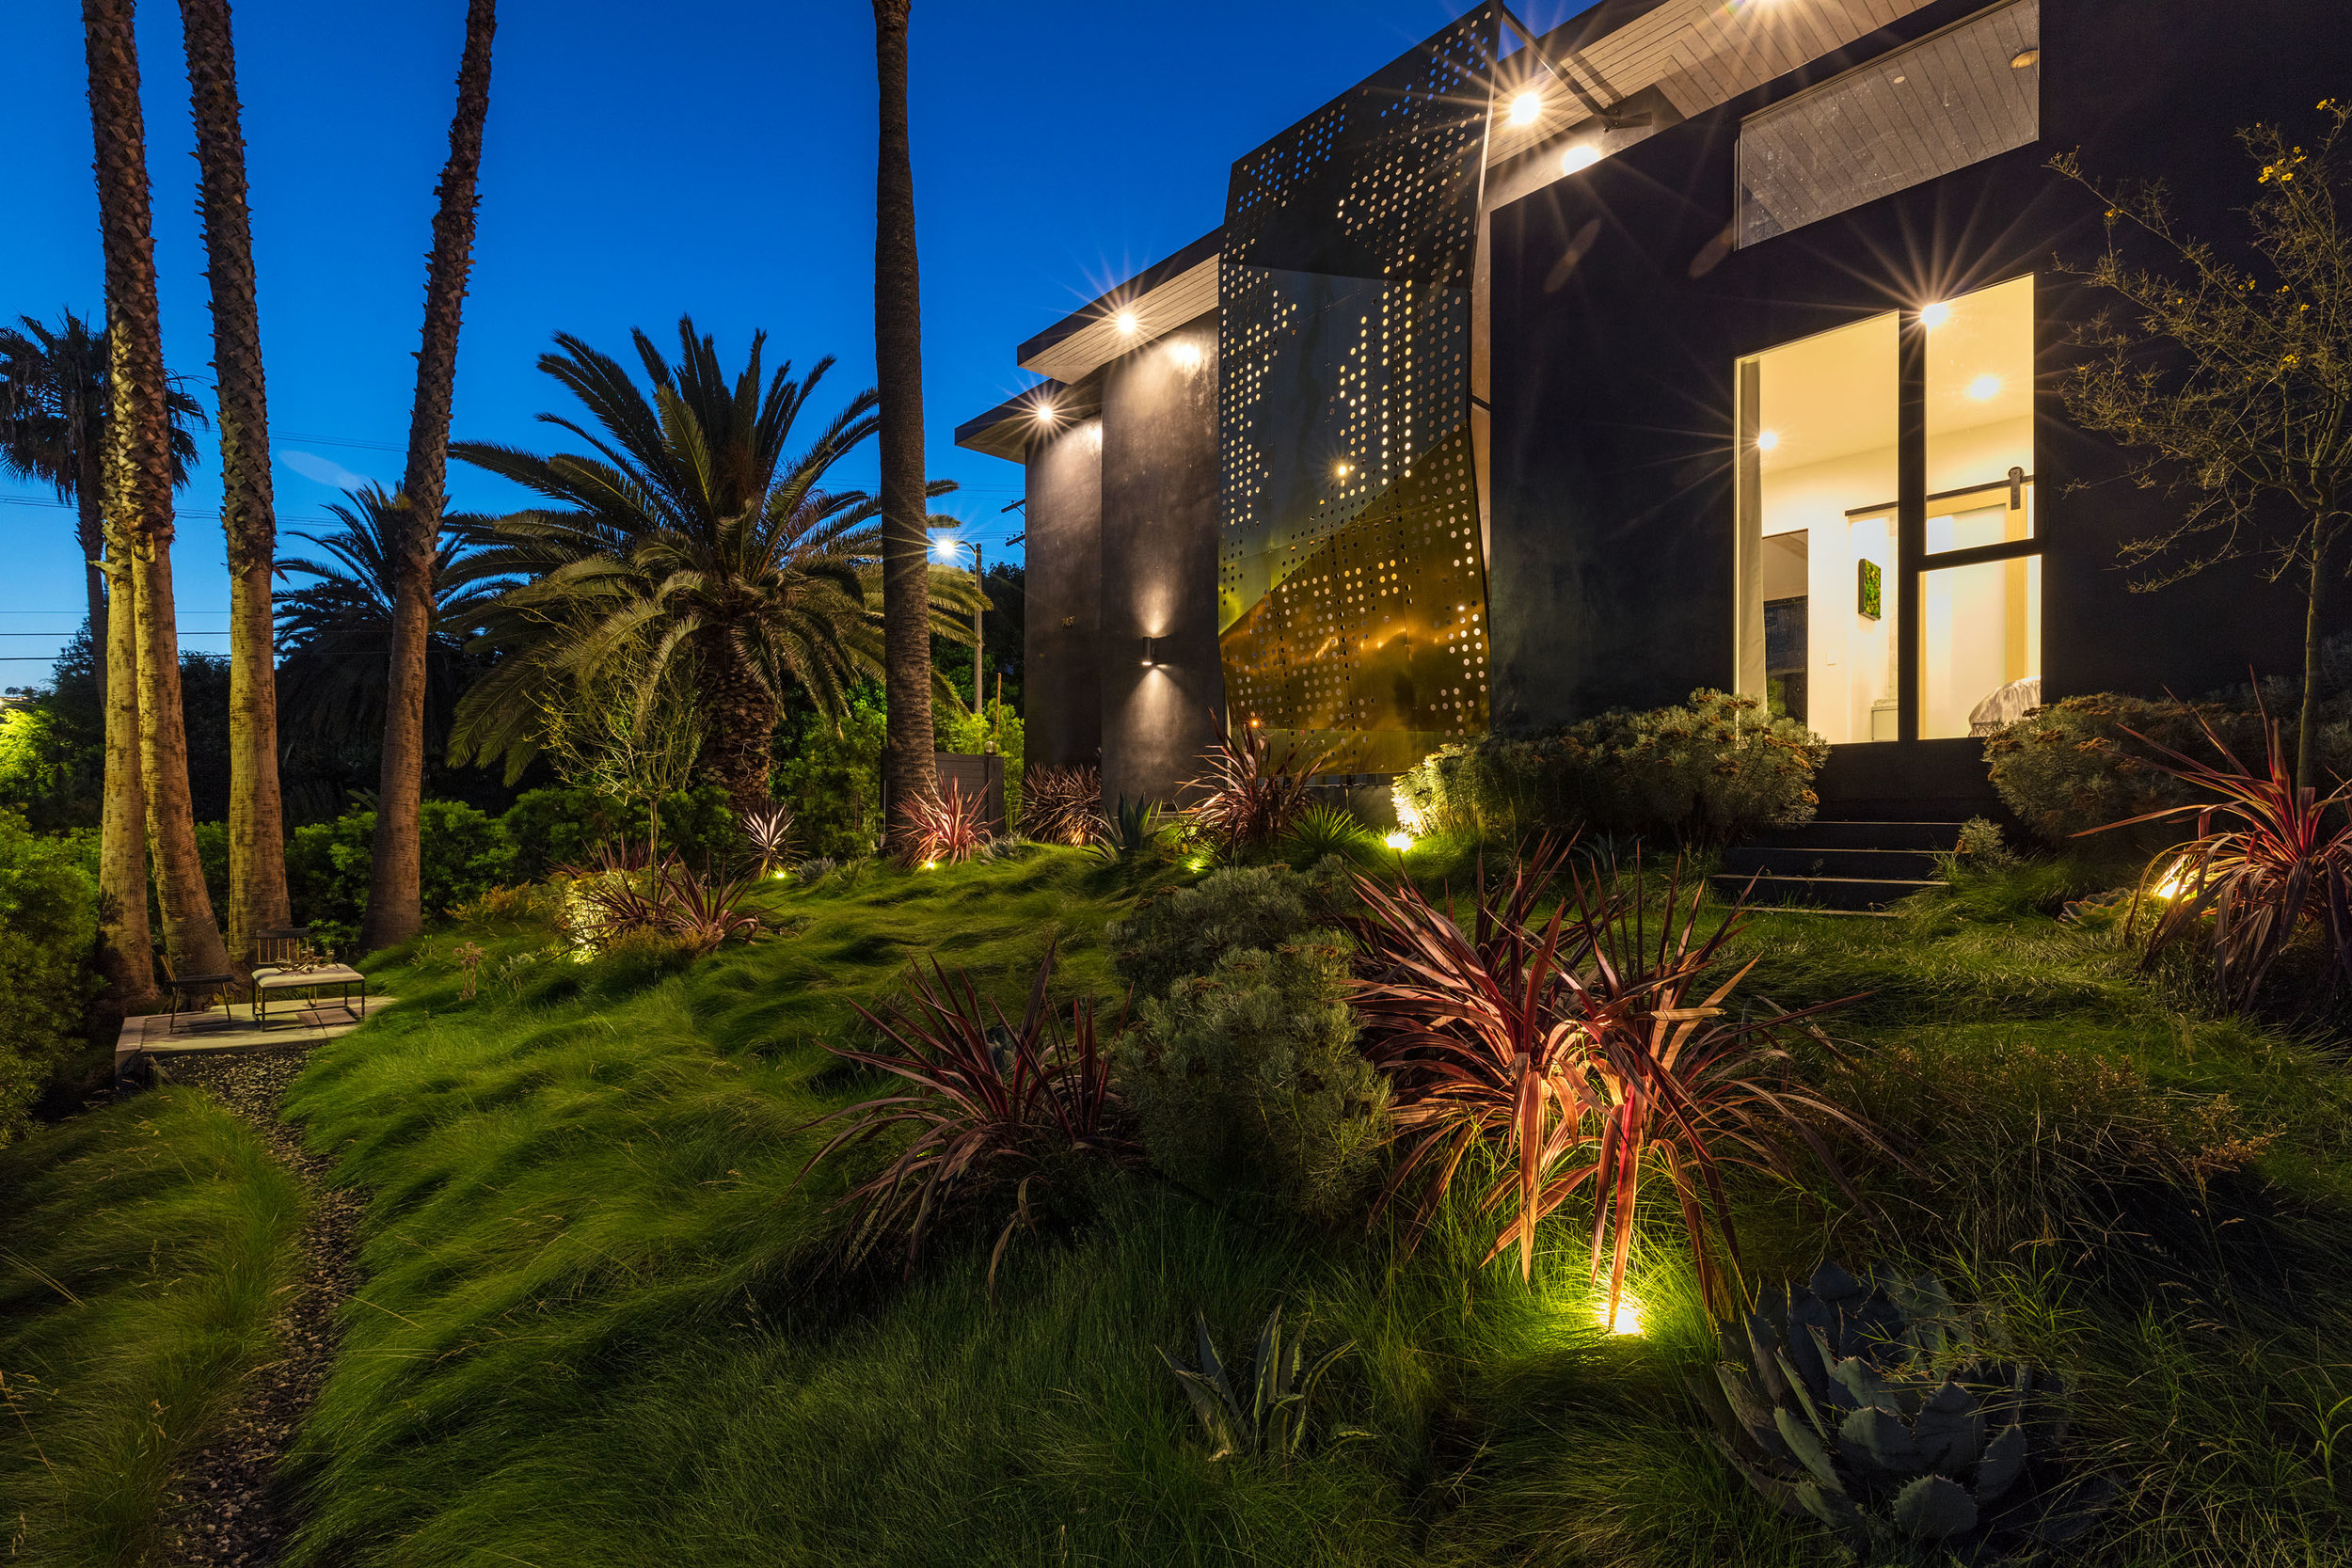 Great Outdoors - ·ART is landscape is art·Brass Façade·Geometric Green Wall·saltwater pool·Drought-tolerant gardens·5 DISTINCT OUTDOOR AreasThis residence is a case study for indoor-outdoor living. Landscape as art; Art as landscape. Outdoors, the 9,700-square-foot lot includes five various but connected seating areas completed by meadows of fescue grass and gorgeous drought-tolerant gardens. Sunlight intentionally bounces off a 21-foot-tall perforated brass façade at the main entrance; a tranquil saltwater pool is flanked by a 36-foot-long abstract green wall. Upstairs, patios boast wall cut-outs that poetically frame sections of the sky. A rich, varied textured palette throughout sports subdued colours and artisan-crafted details as a symbolic nod to the five elements (even referenced in the names of plants such as